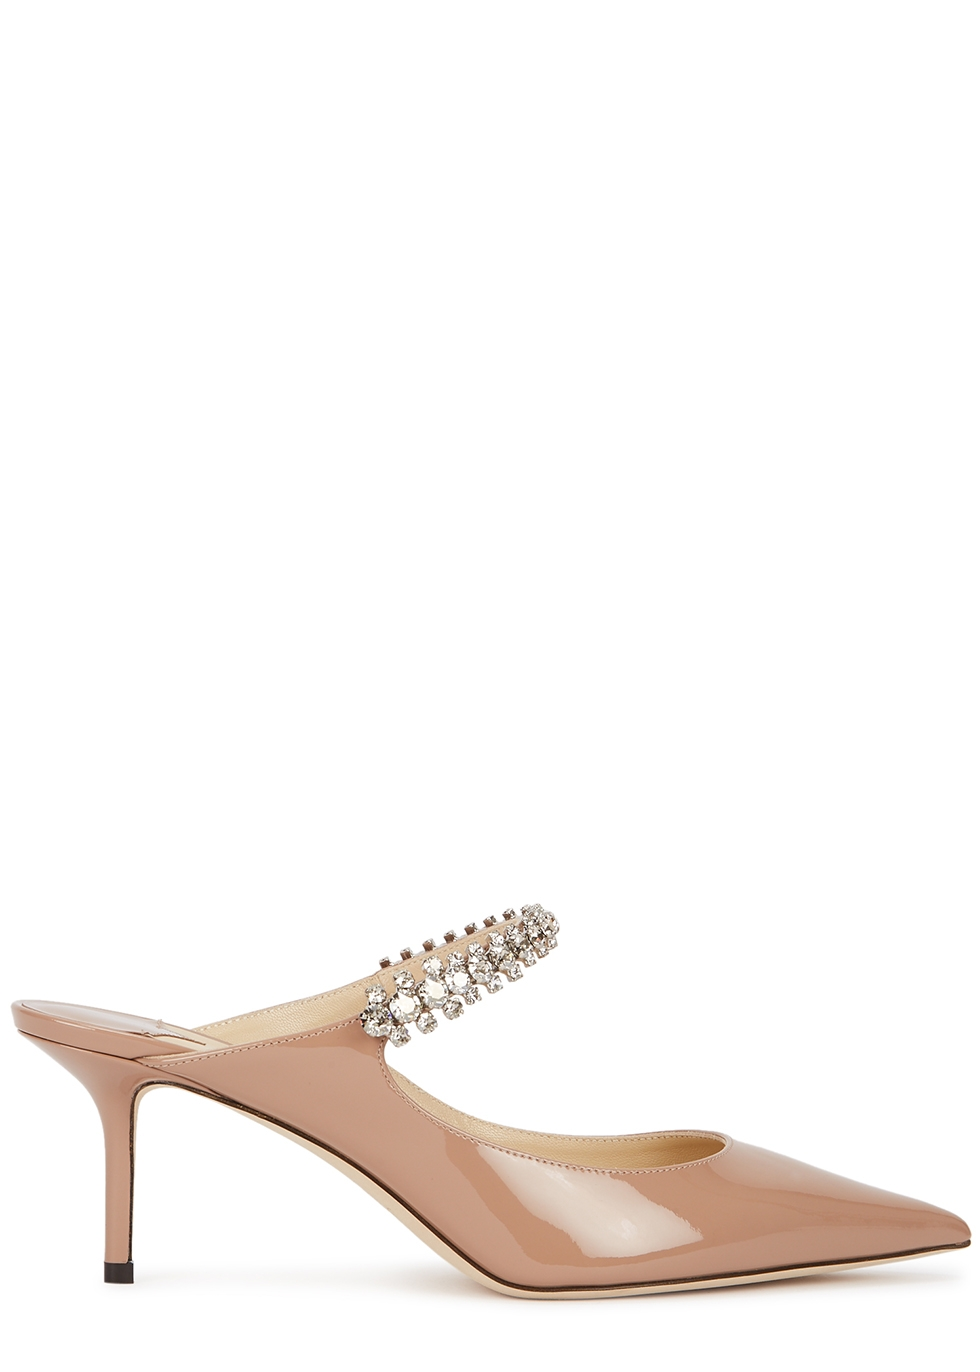 Bing 65 embellished leather mules